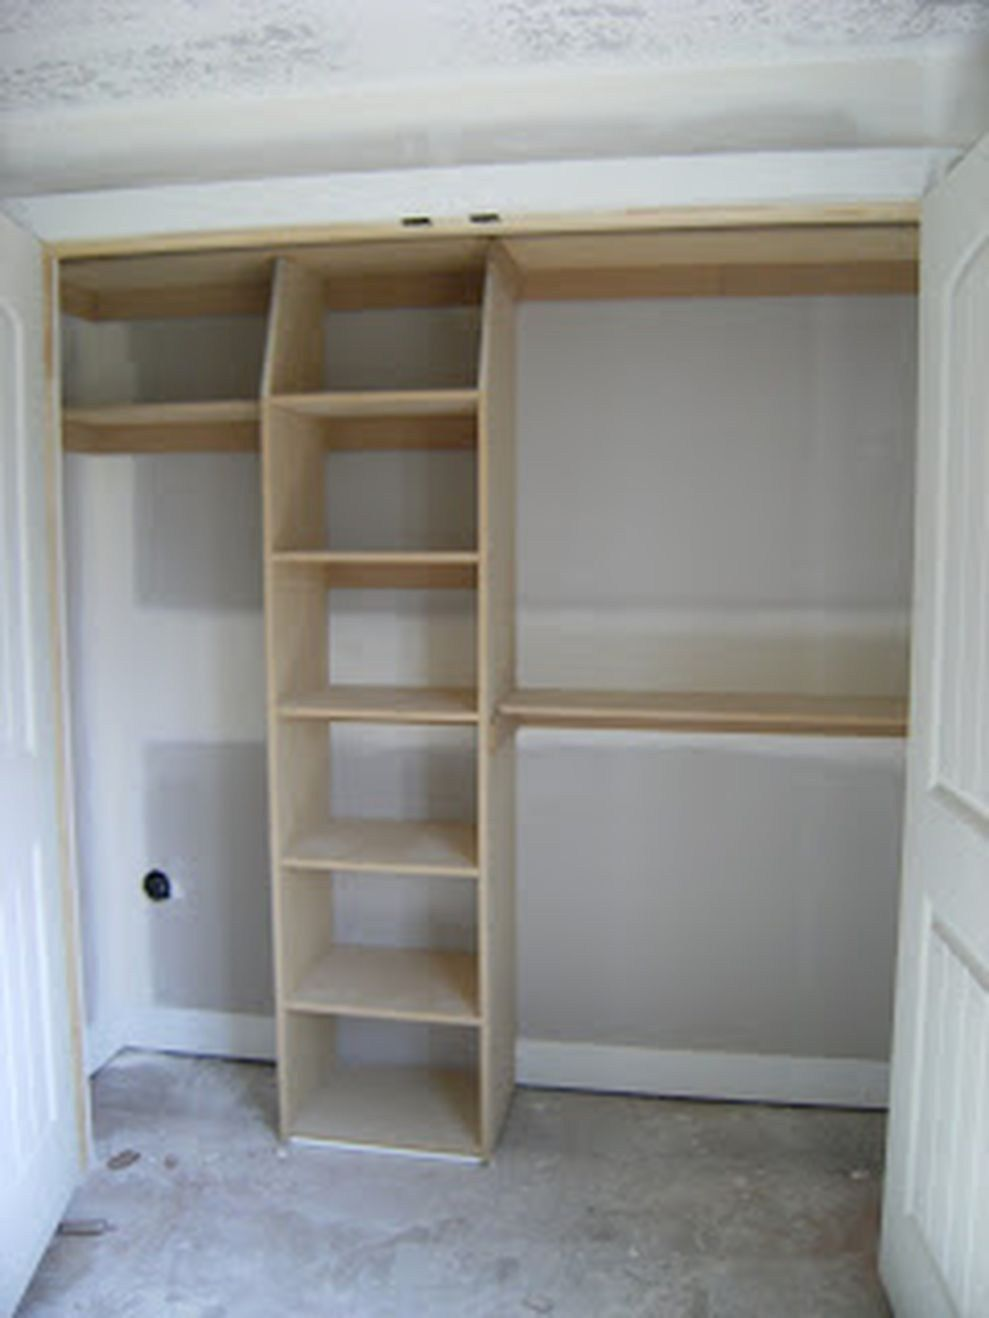 Easy And Affordable Diy Wood Closet Shelves Ideas 15